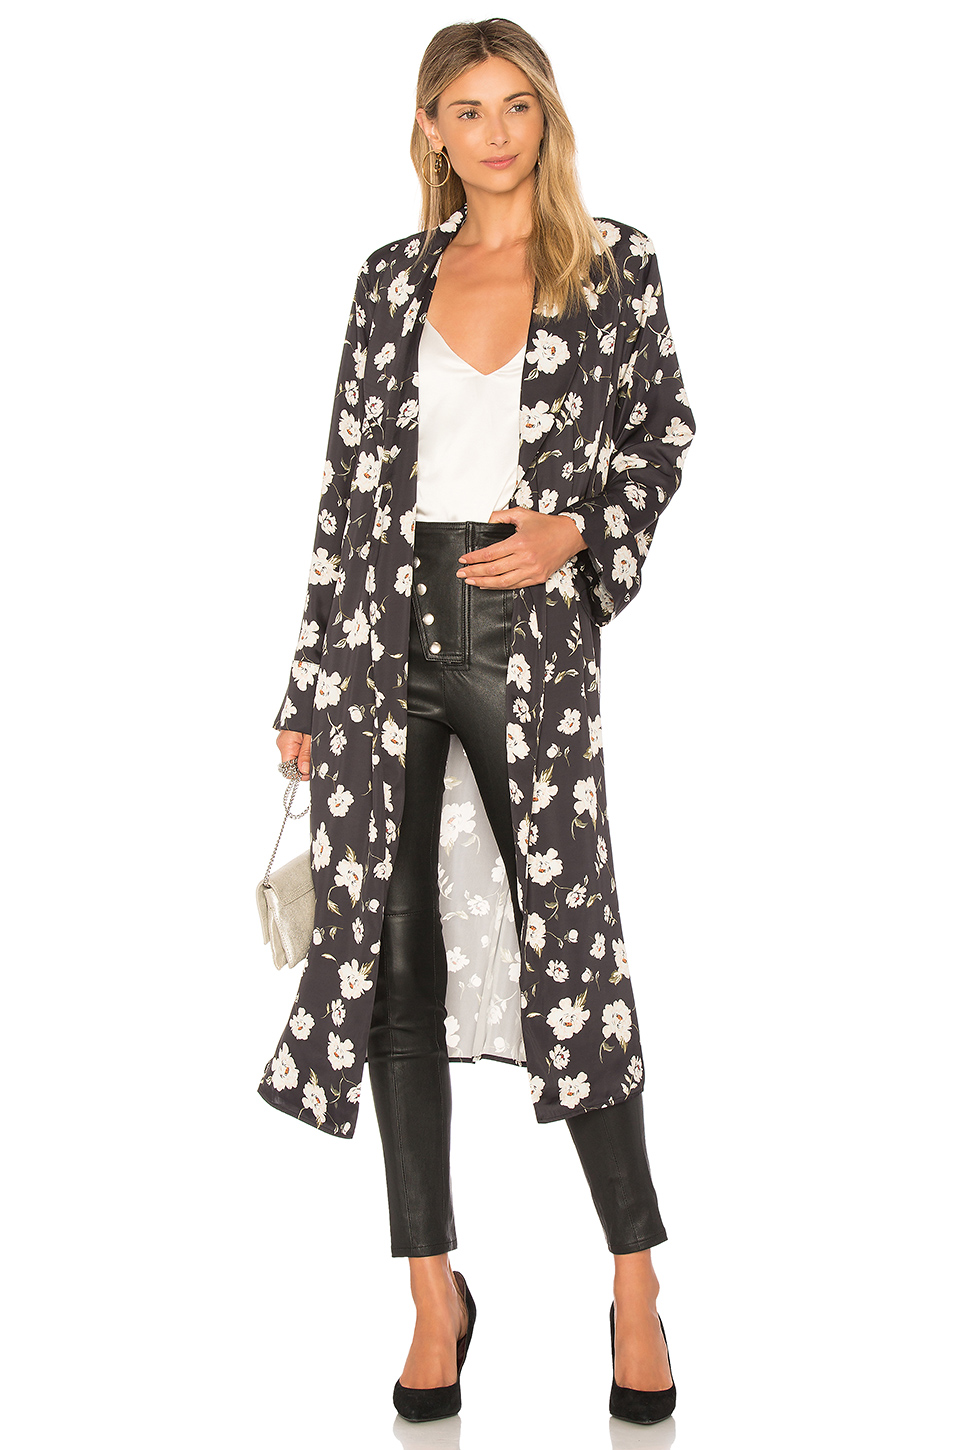 L'Academie The Robe | On Sale for $113